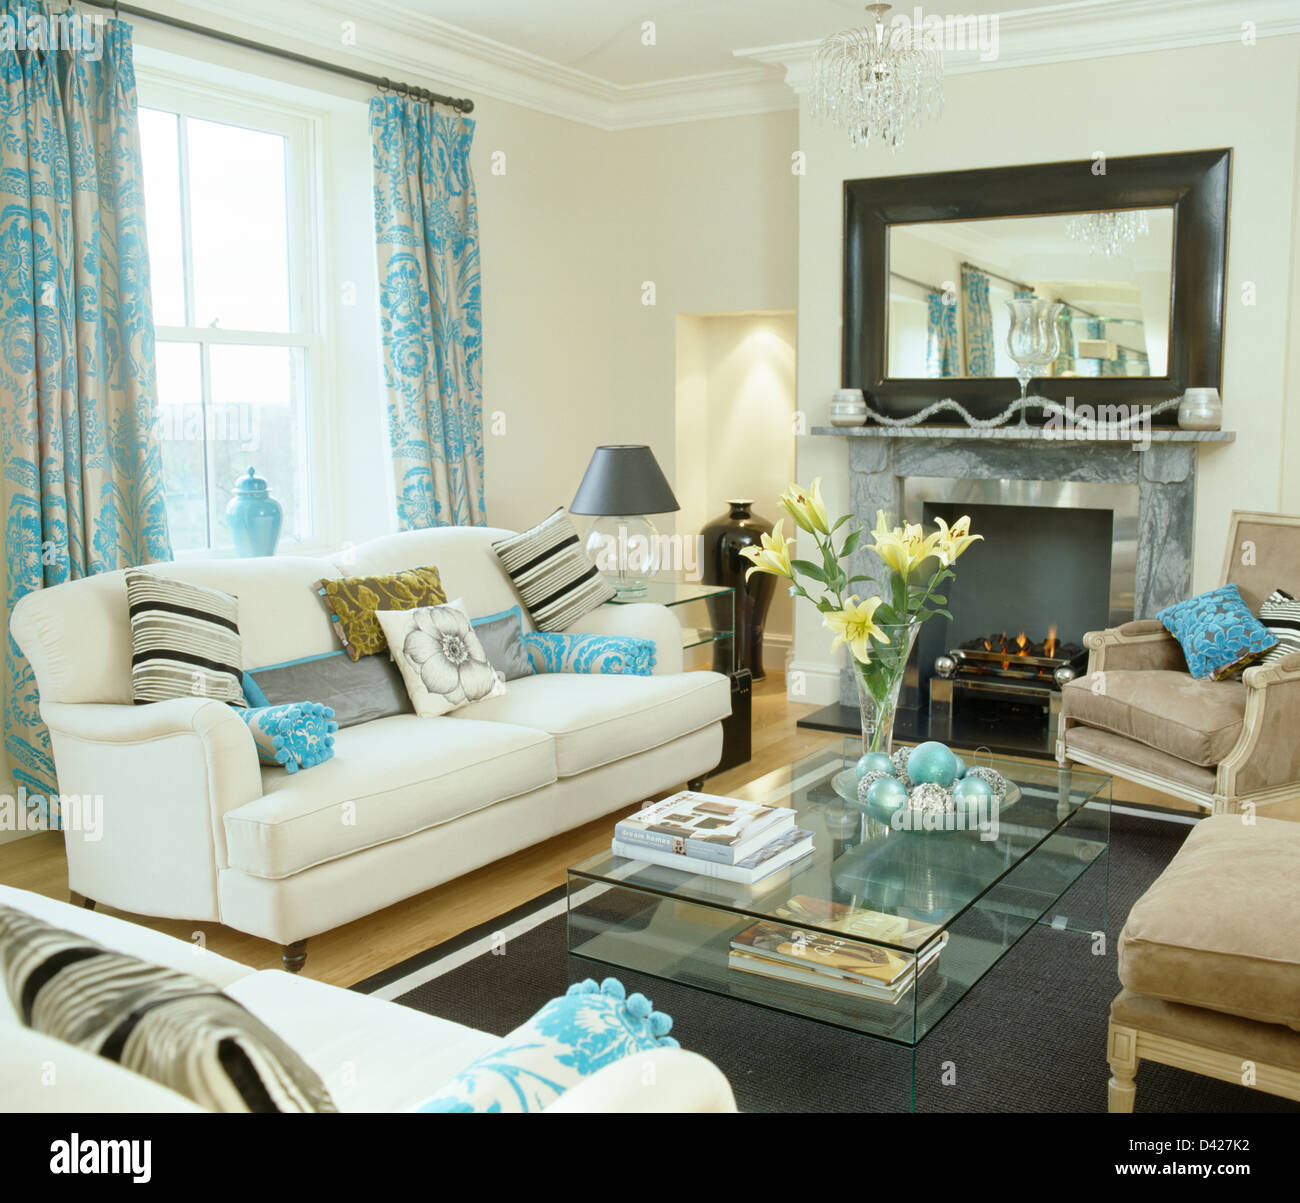 Patterned Turquoise Curtains On Window Above White Sofa In White Living Room  With Large Mirror Above Fireplace Part 82